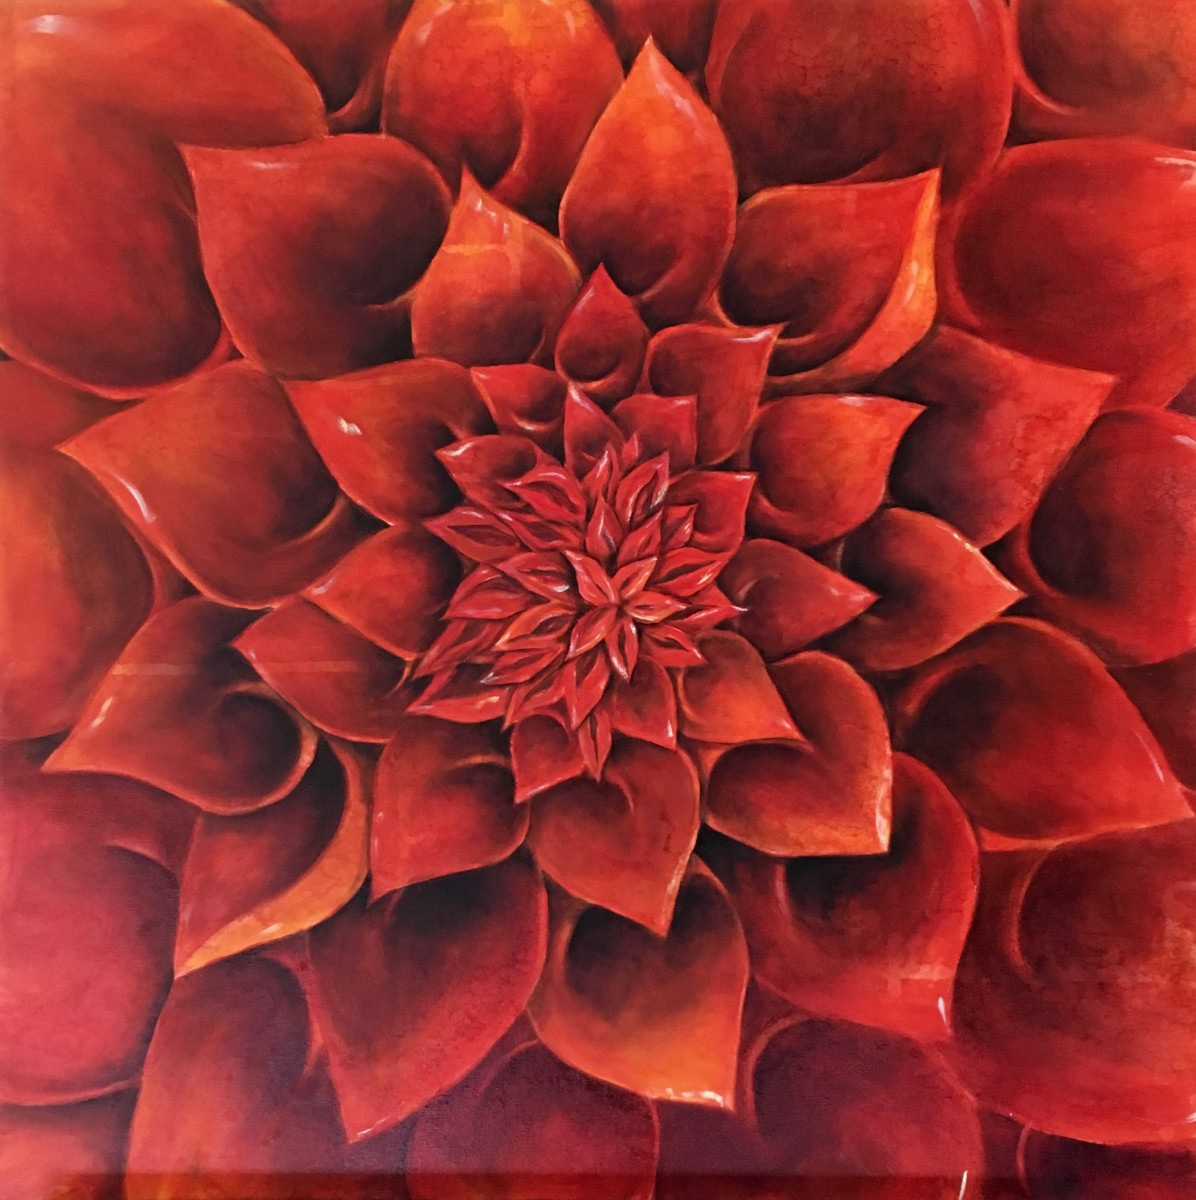 Red Blossom by Ansley Pye